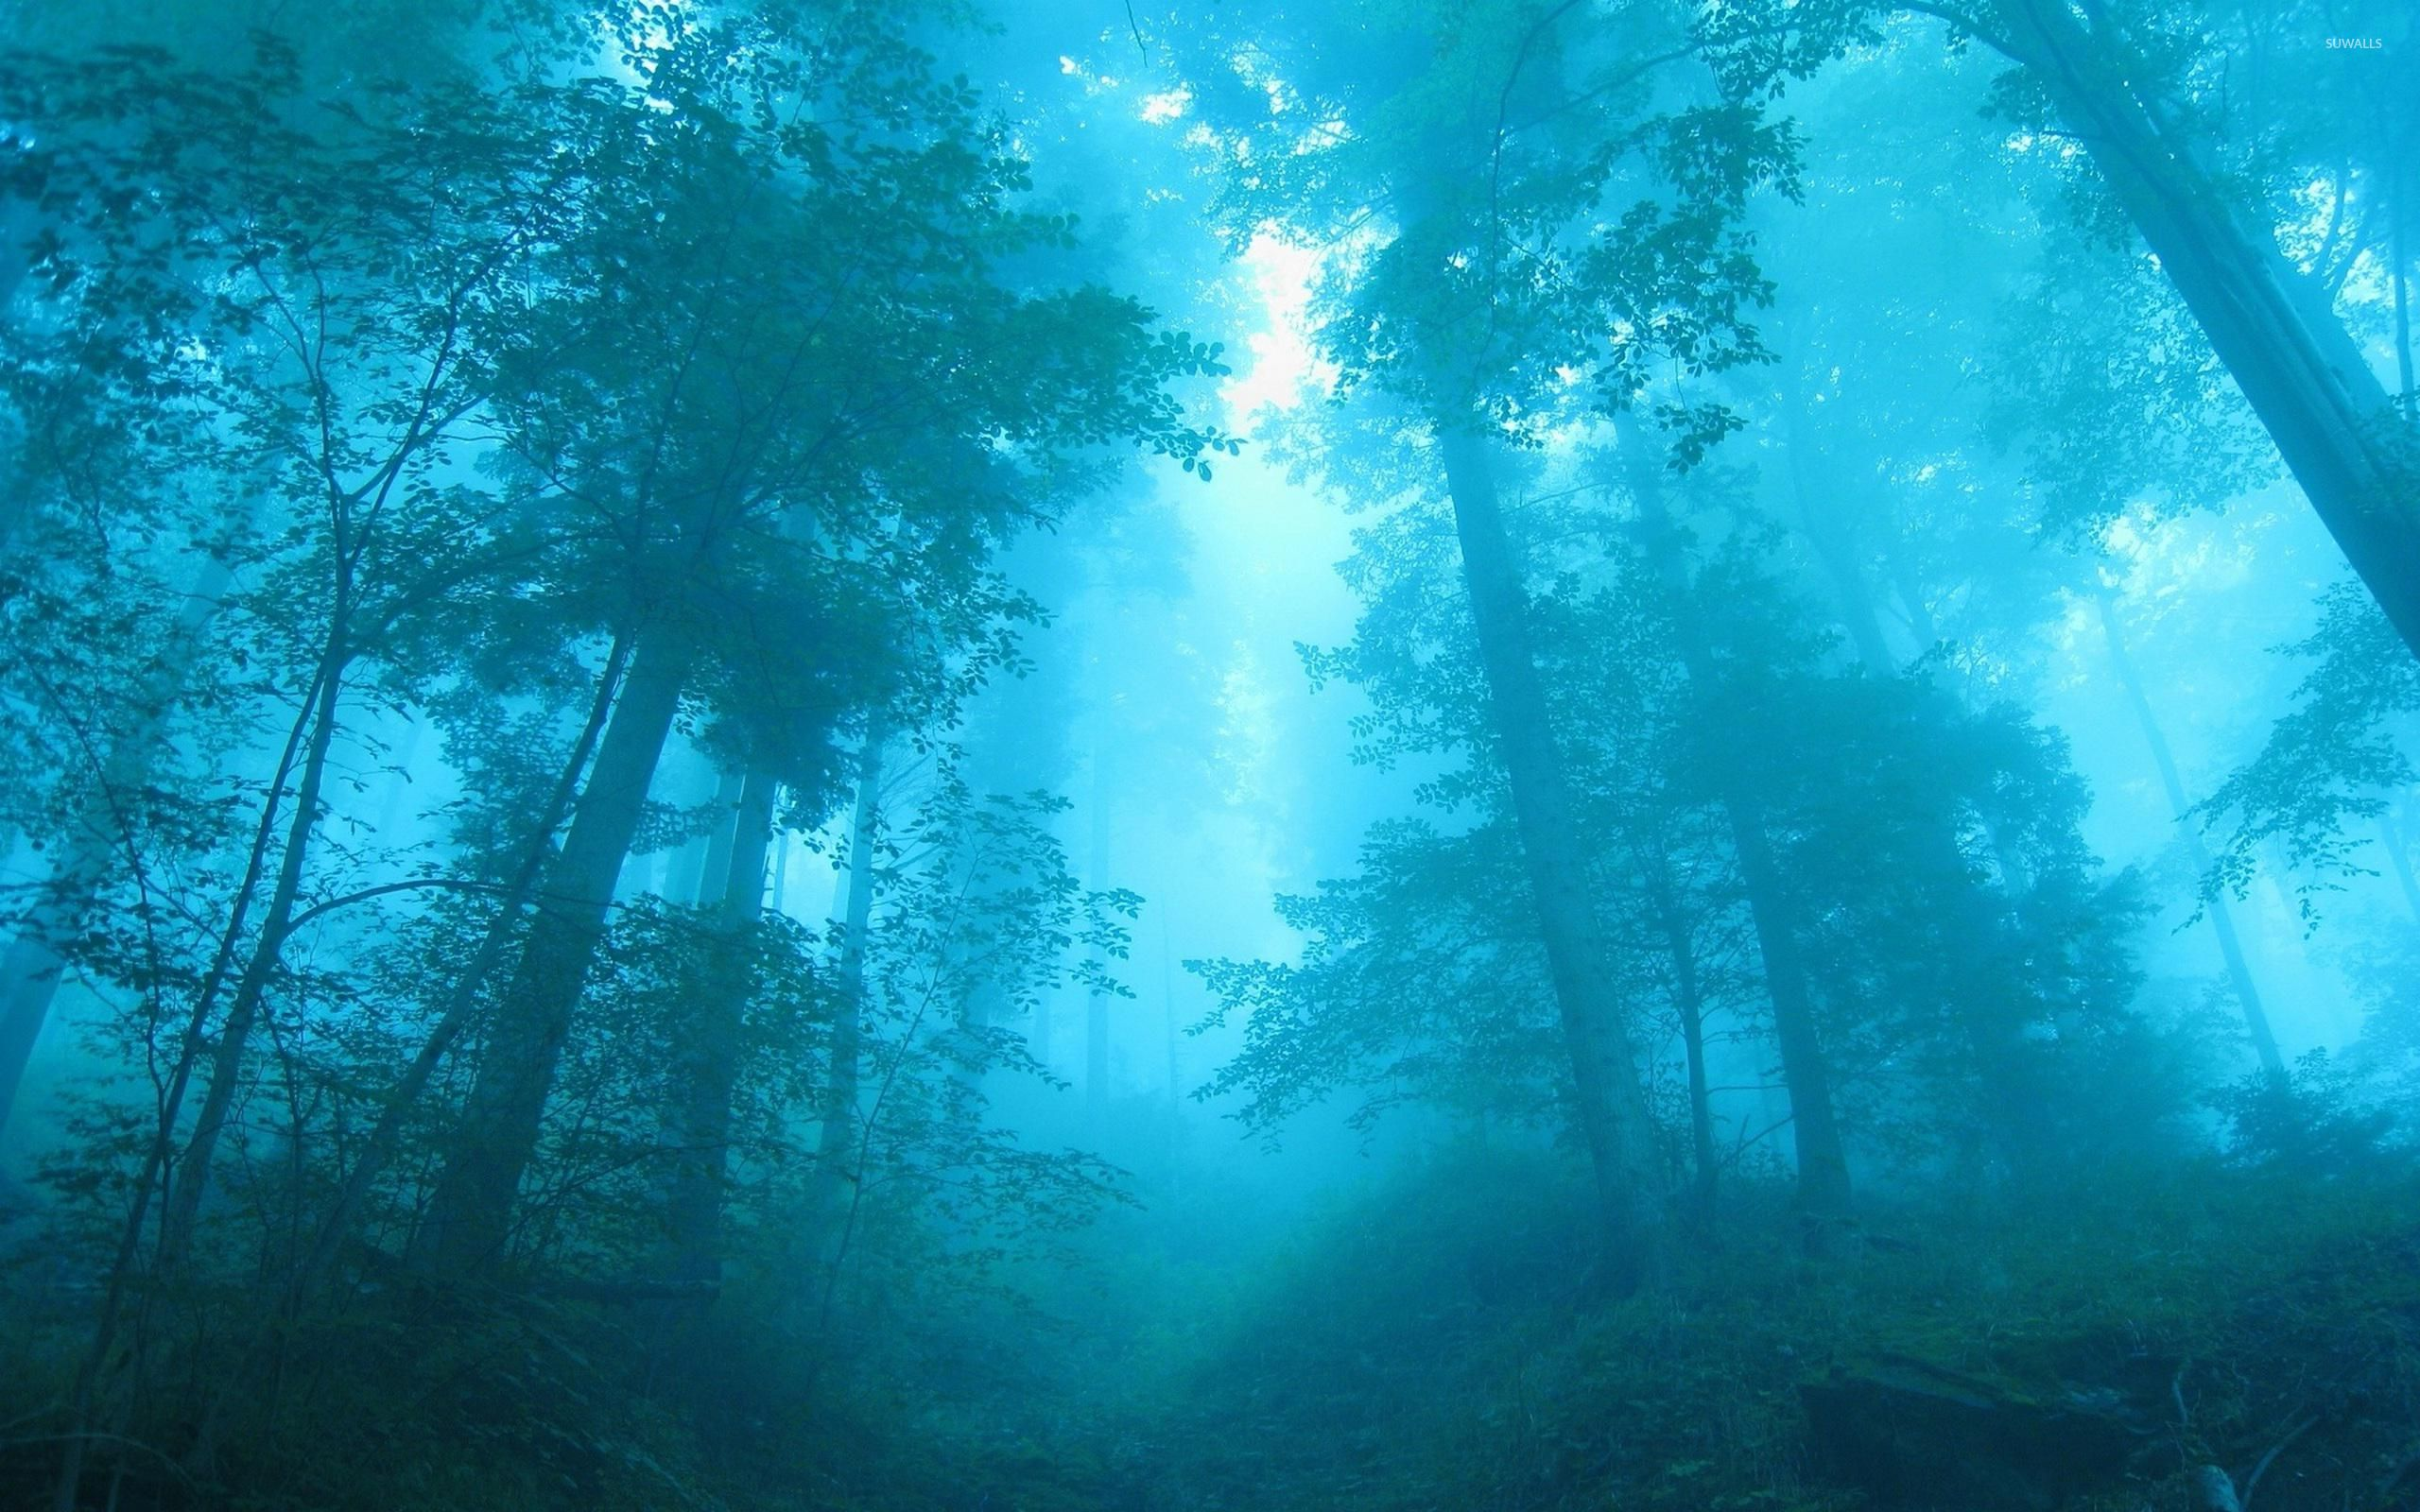 Blue Light In The Foggy Forest Wallpaper Nature